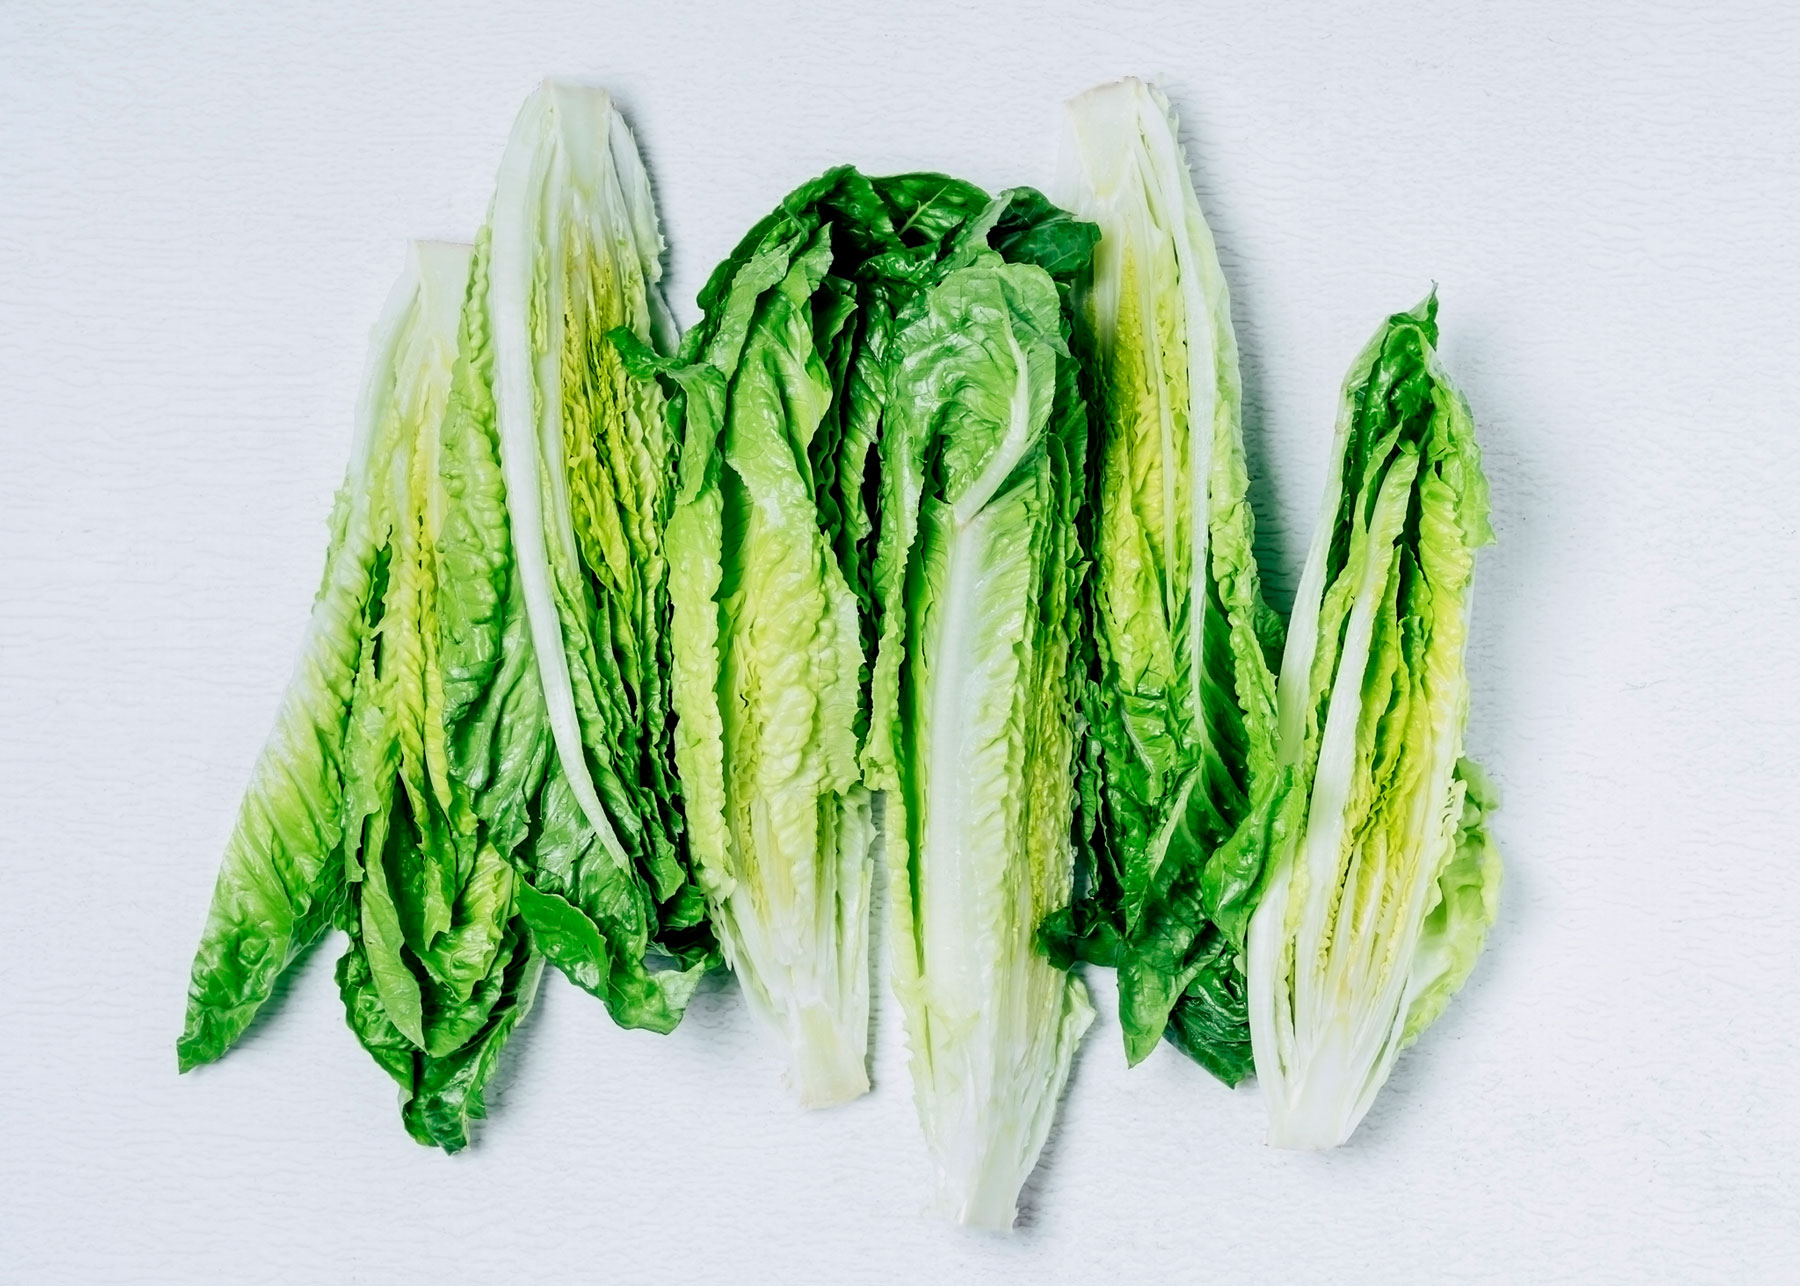 Romaine Lettuce E. Coli Outbreak Pre Thanksgiving